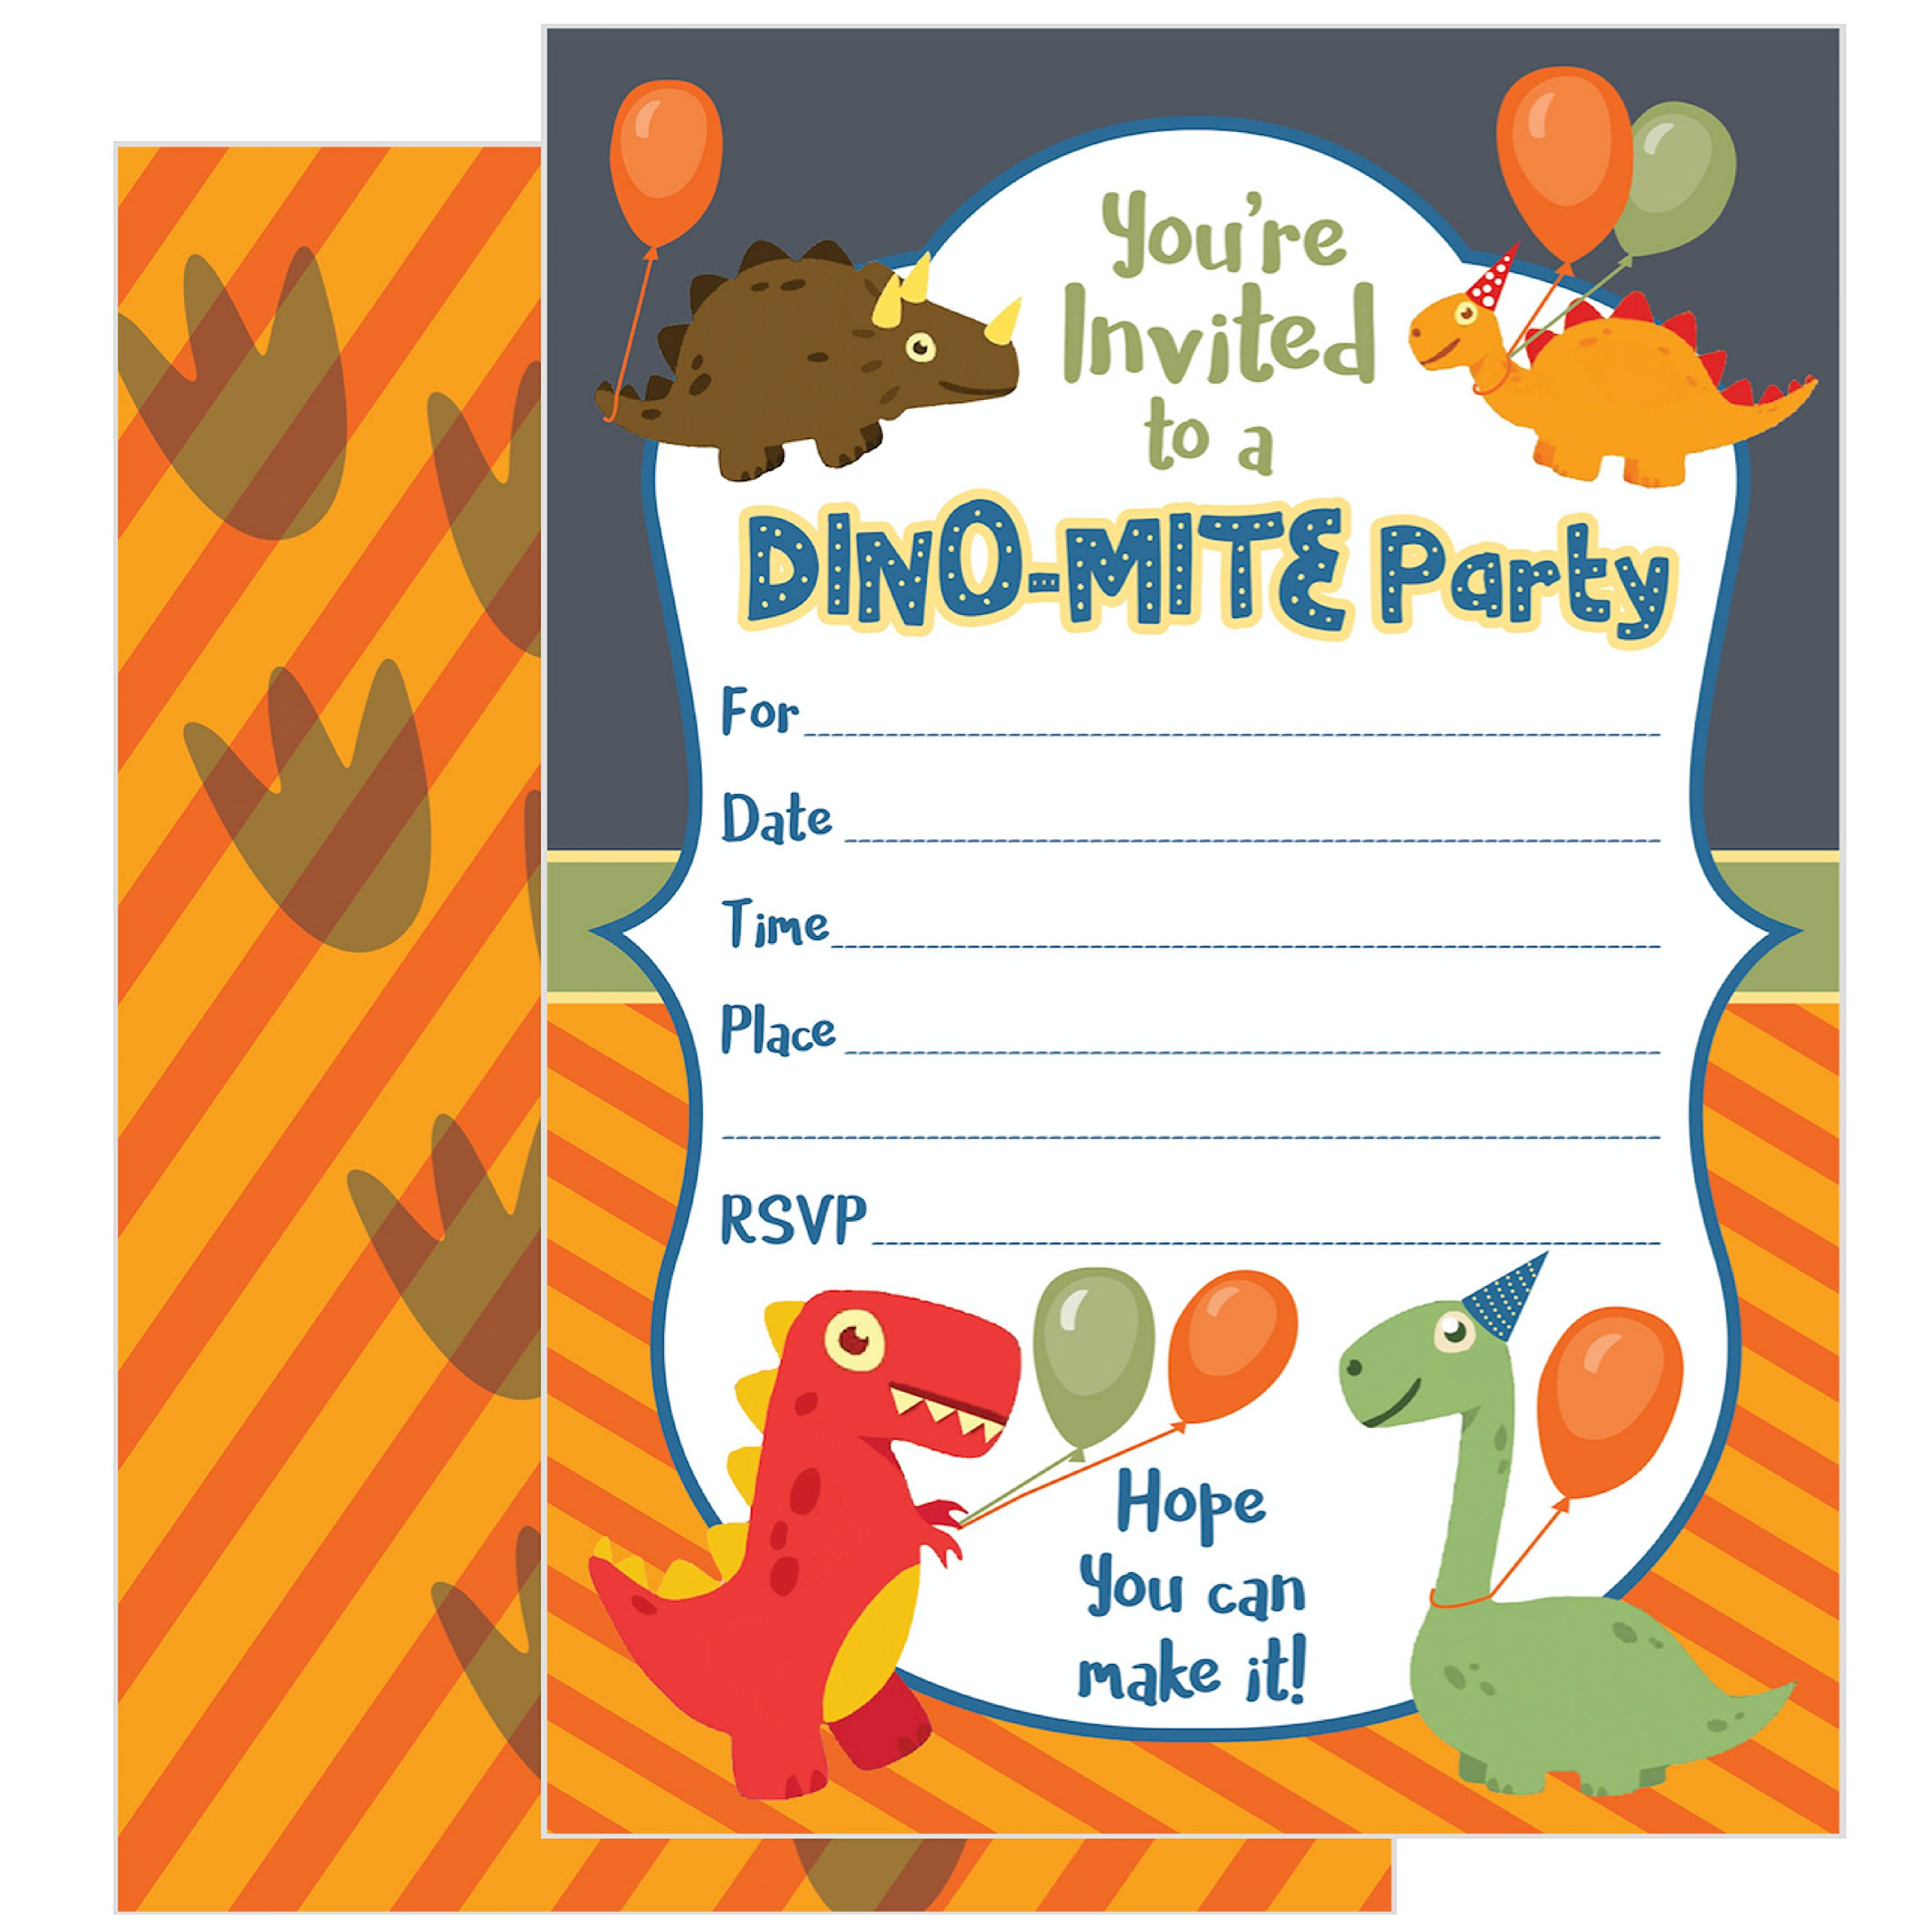 ZOLCO Prints 25 Dinosaur Birthday Invitations with Envelopes – These Kids Party Invitation Cards (5x7 inch) are a Great Way to Tell Everyone About Your Boys or Girls Dino Theme Party